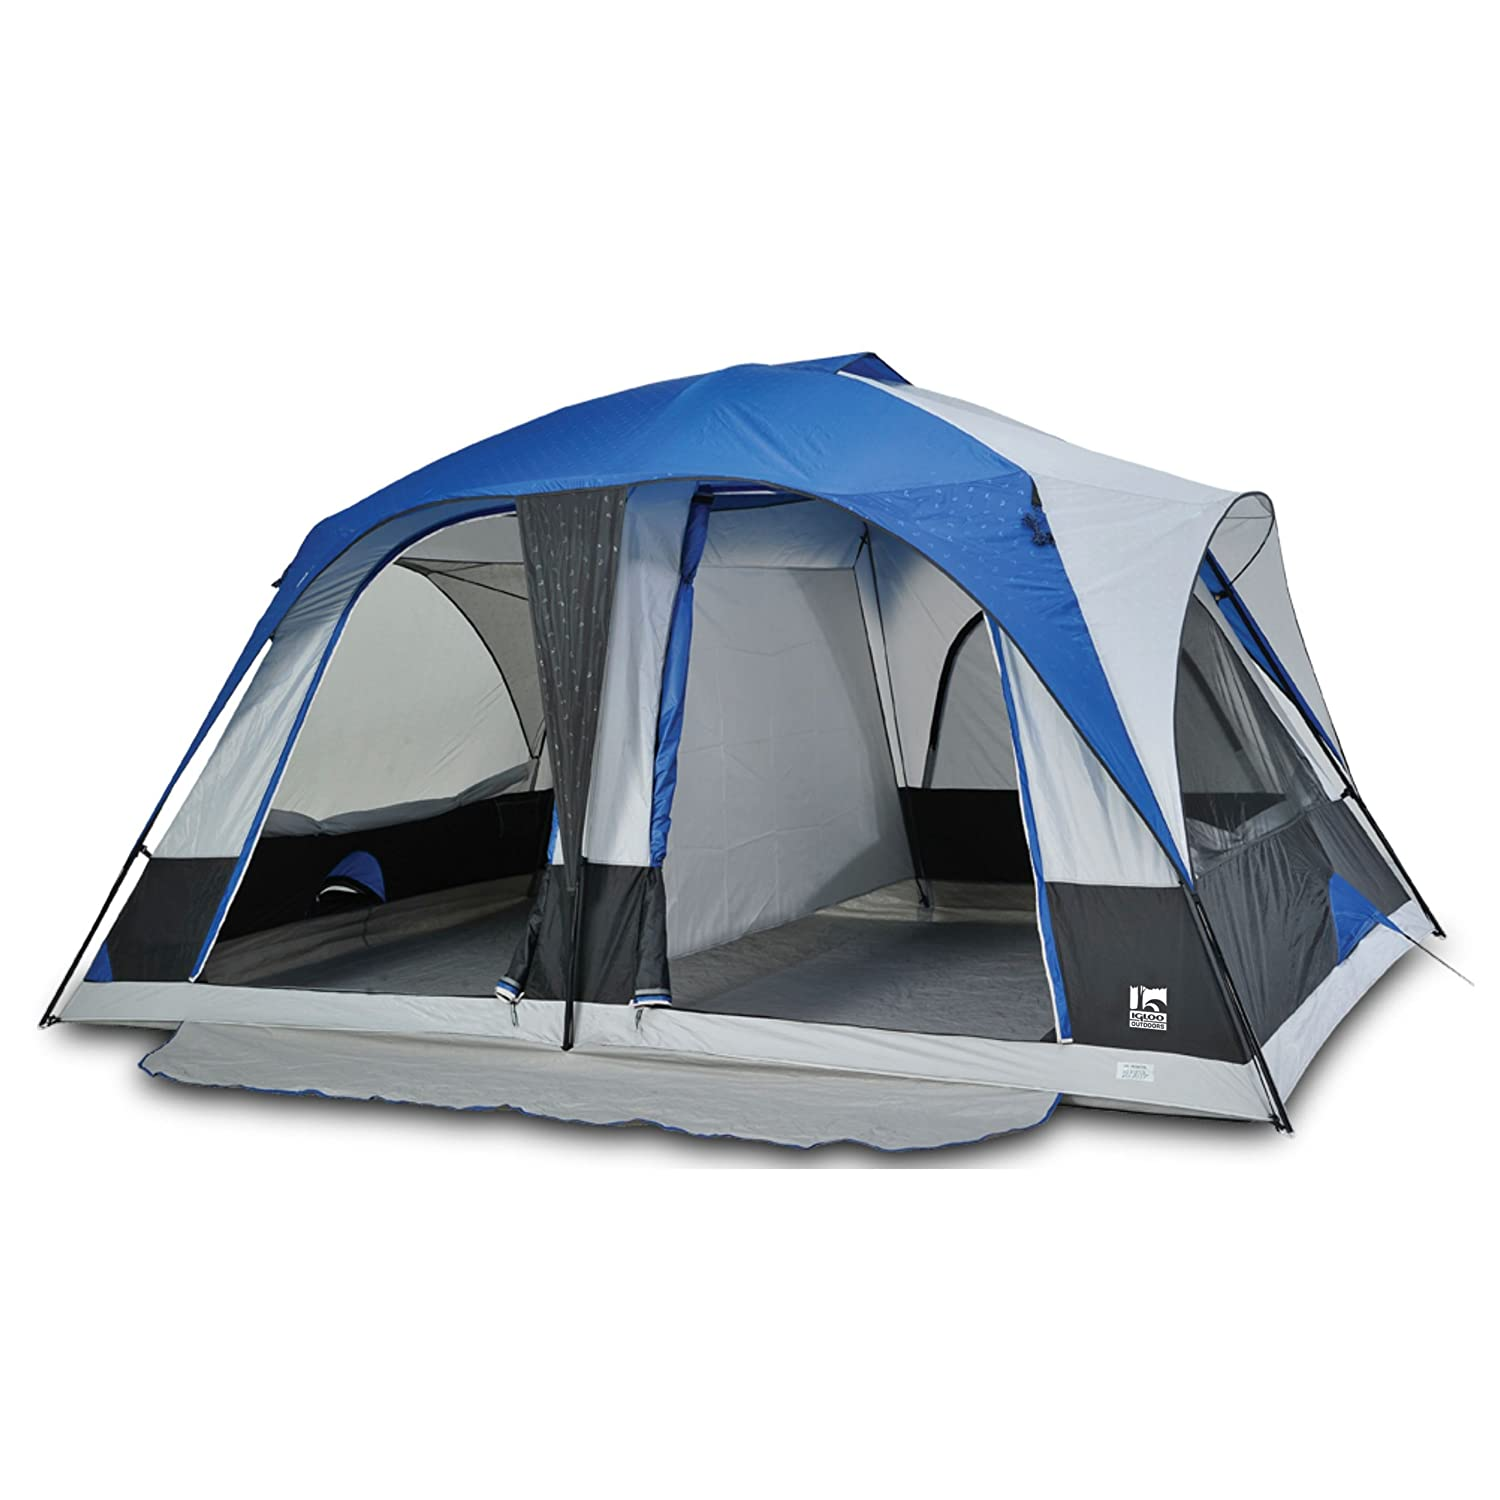 Amazon.com  Igloo Hayden Creek II 2-Room Dome Tent (8-Person) Blue  Family Tents  Sports u0026 Outdoors  sc 1 st  Amazon.com & Amazon.com : Igloo Hayden Creek II 2-Room Dome Tent (8-Person ...